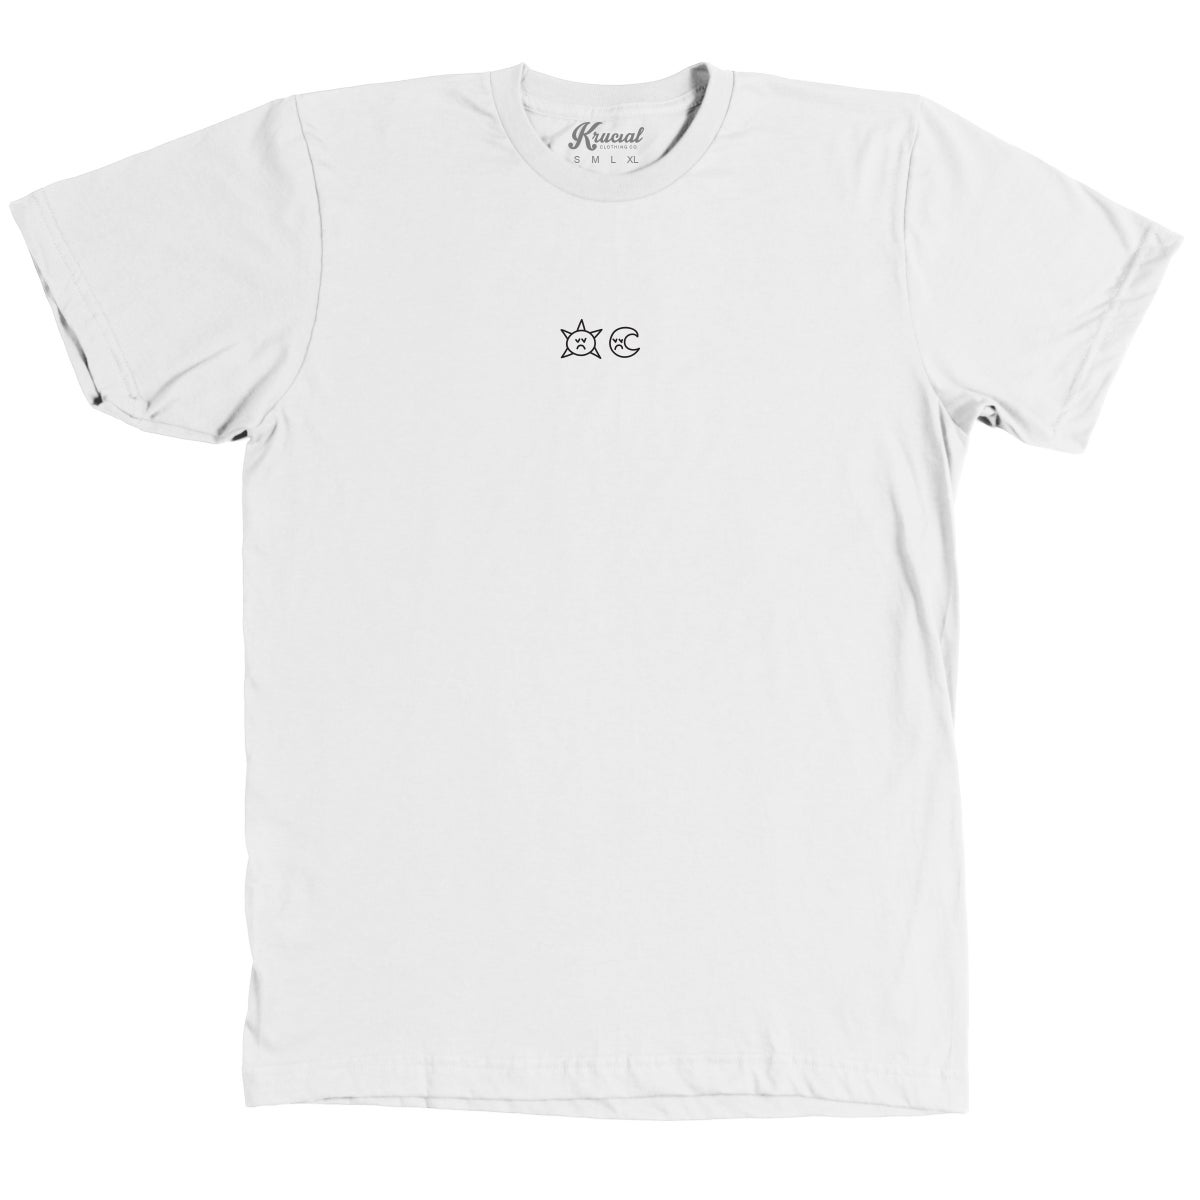 Image of Dreams & Schemes Tee (White)